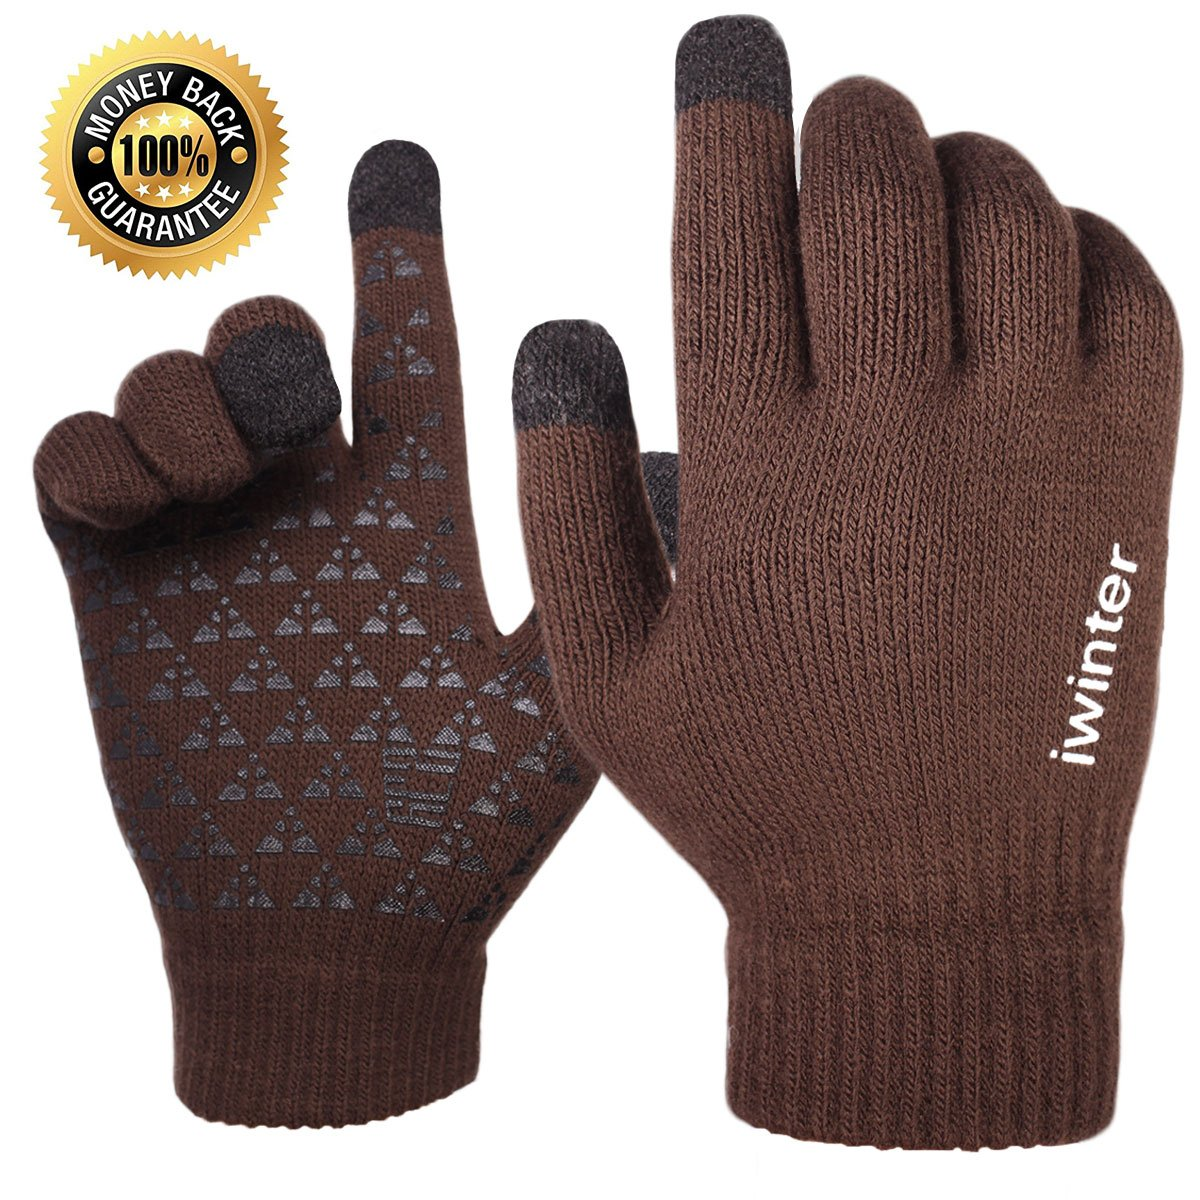 ca1c54c367d9e Achiou Winter Knit Gloves Touchscreen Warm Thermal Soft Lining Elastic Cuff  Texting Anti-Slip 3 Size ...